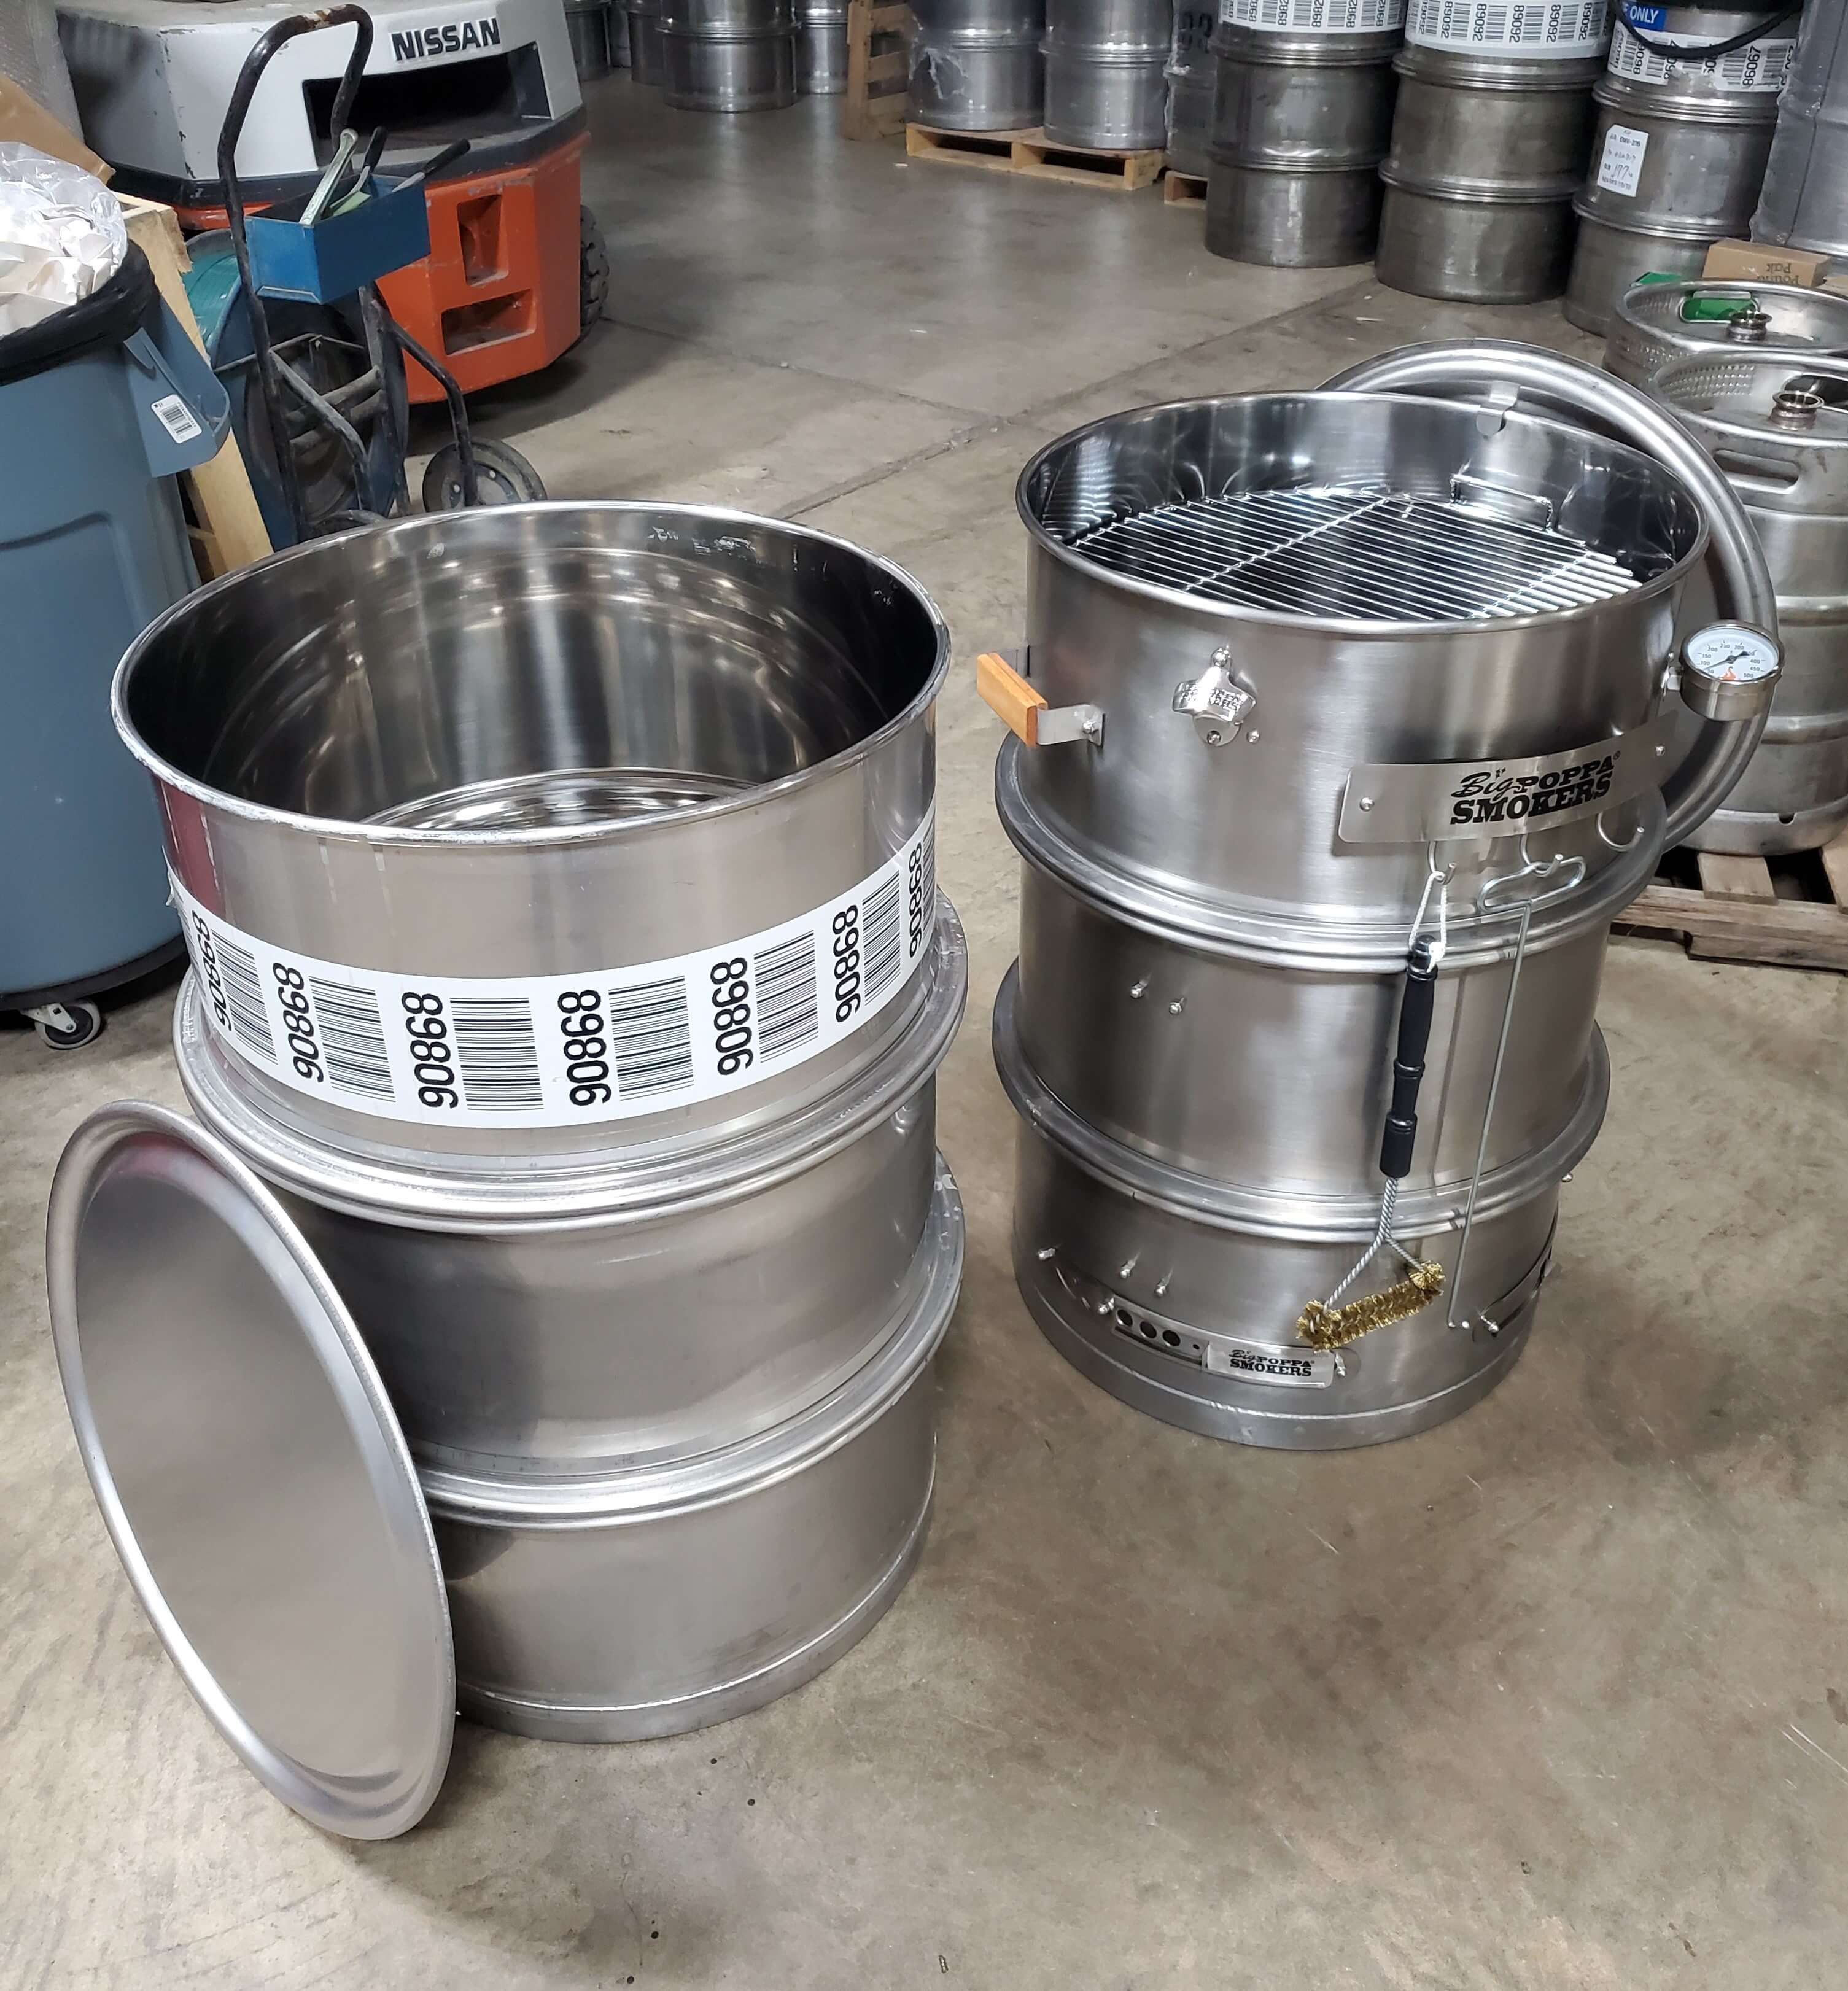 Used Stainless Steel Drum To Lifelong High Quality Stainless Steel Smoker Drum Yes You Will In 2020 Steel Barrel Stainless Steel Drum Stainless Steel Accessories